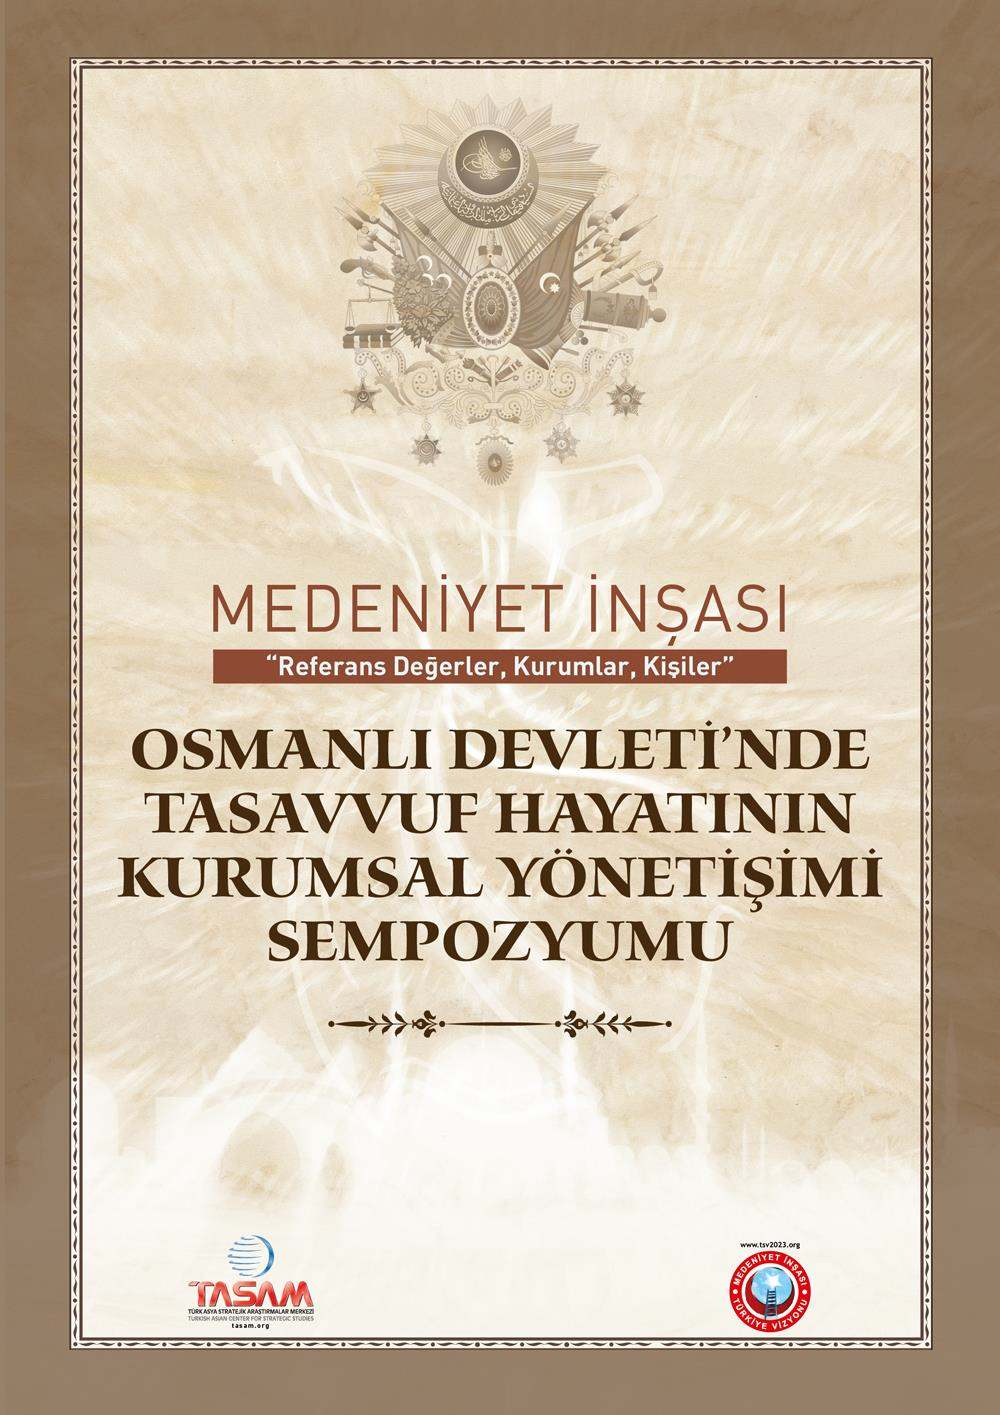 Institutional Governance of Tasawwuf Life in Ottoman Empire Symposium